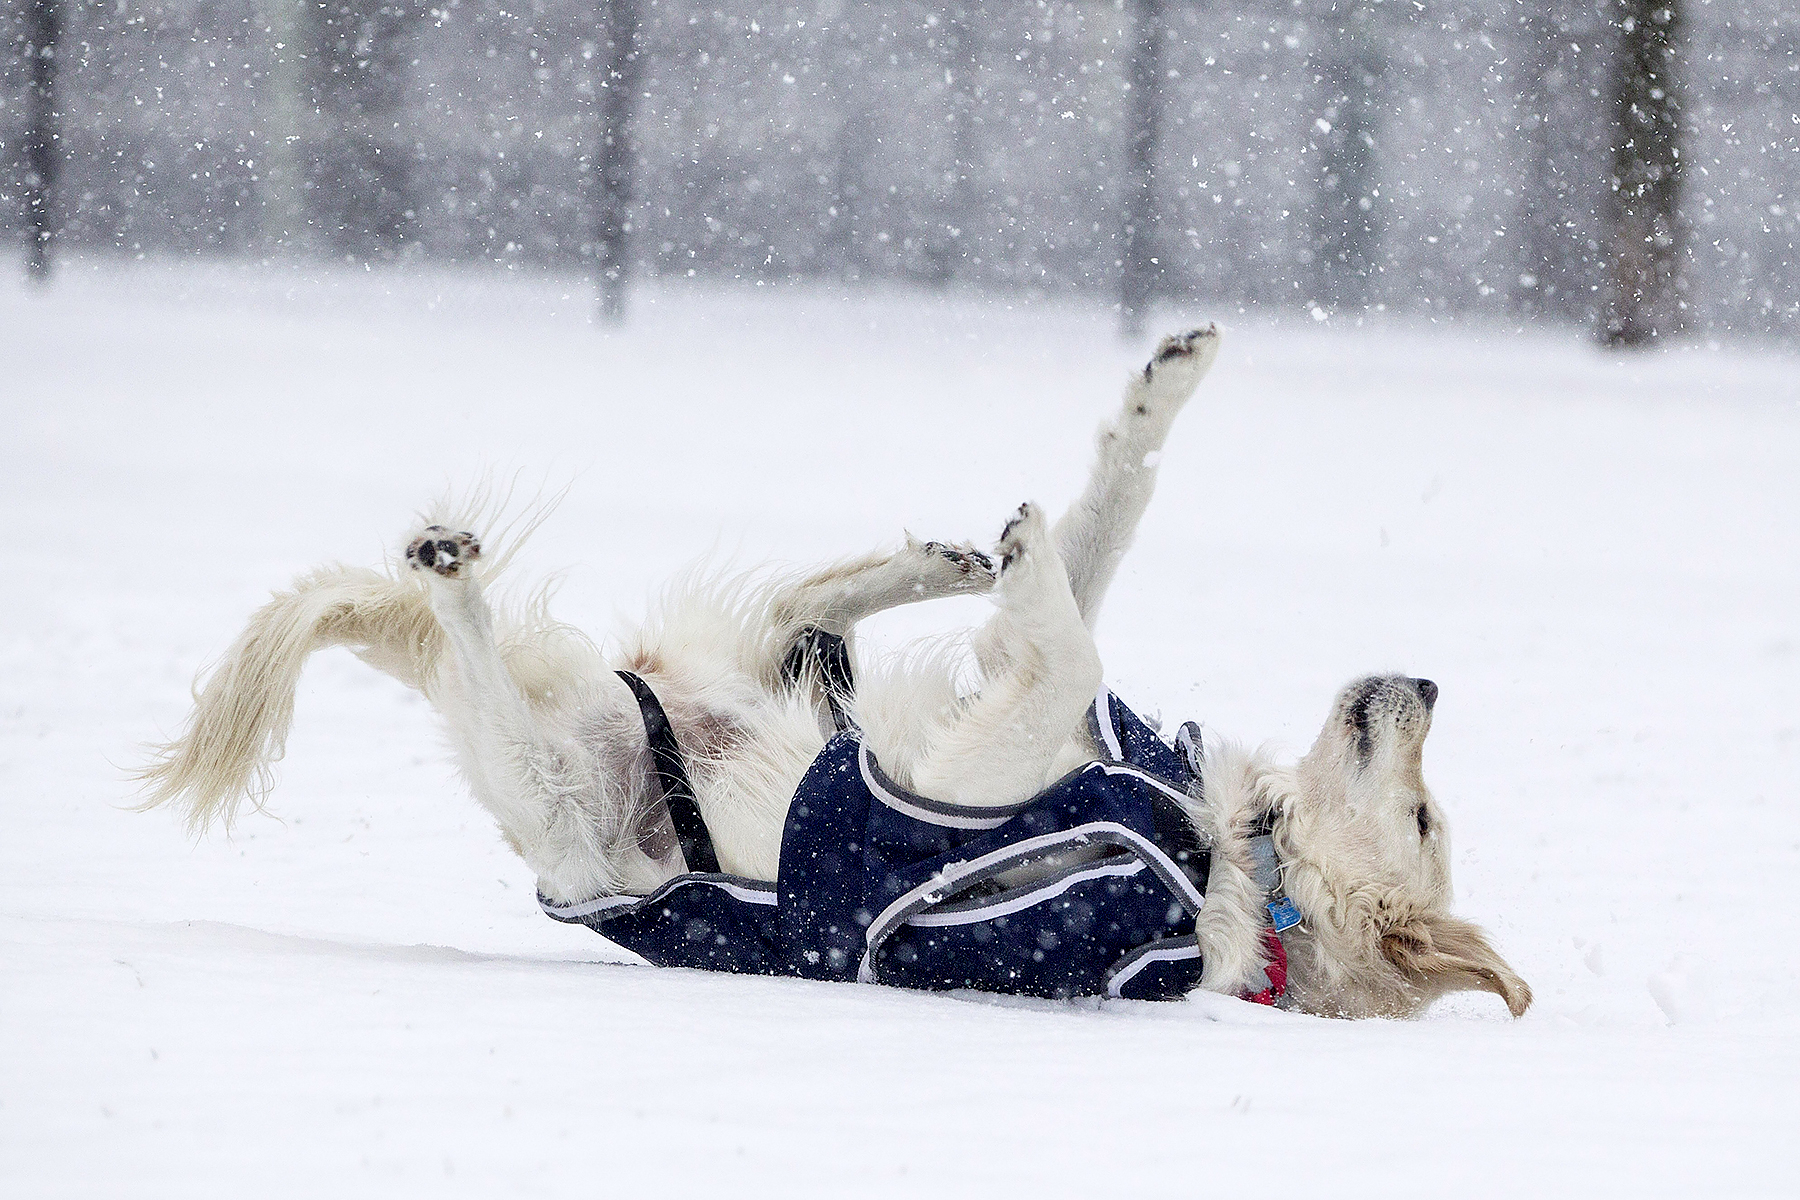 A dog rolls in the snow on the Boston Common as Winter Storm Stella bears down on March 14, 2017 in Boston, Massachussets.